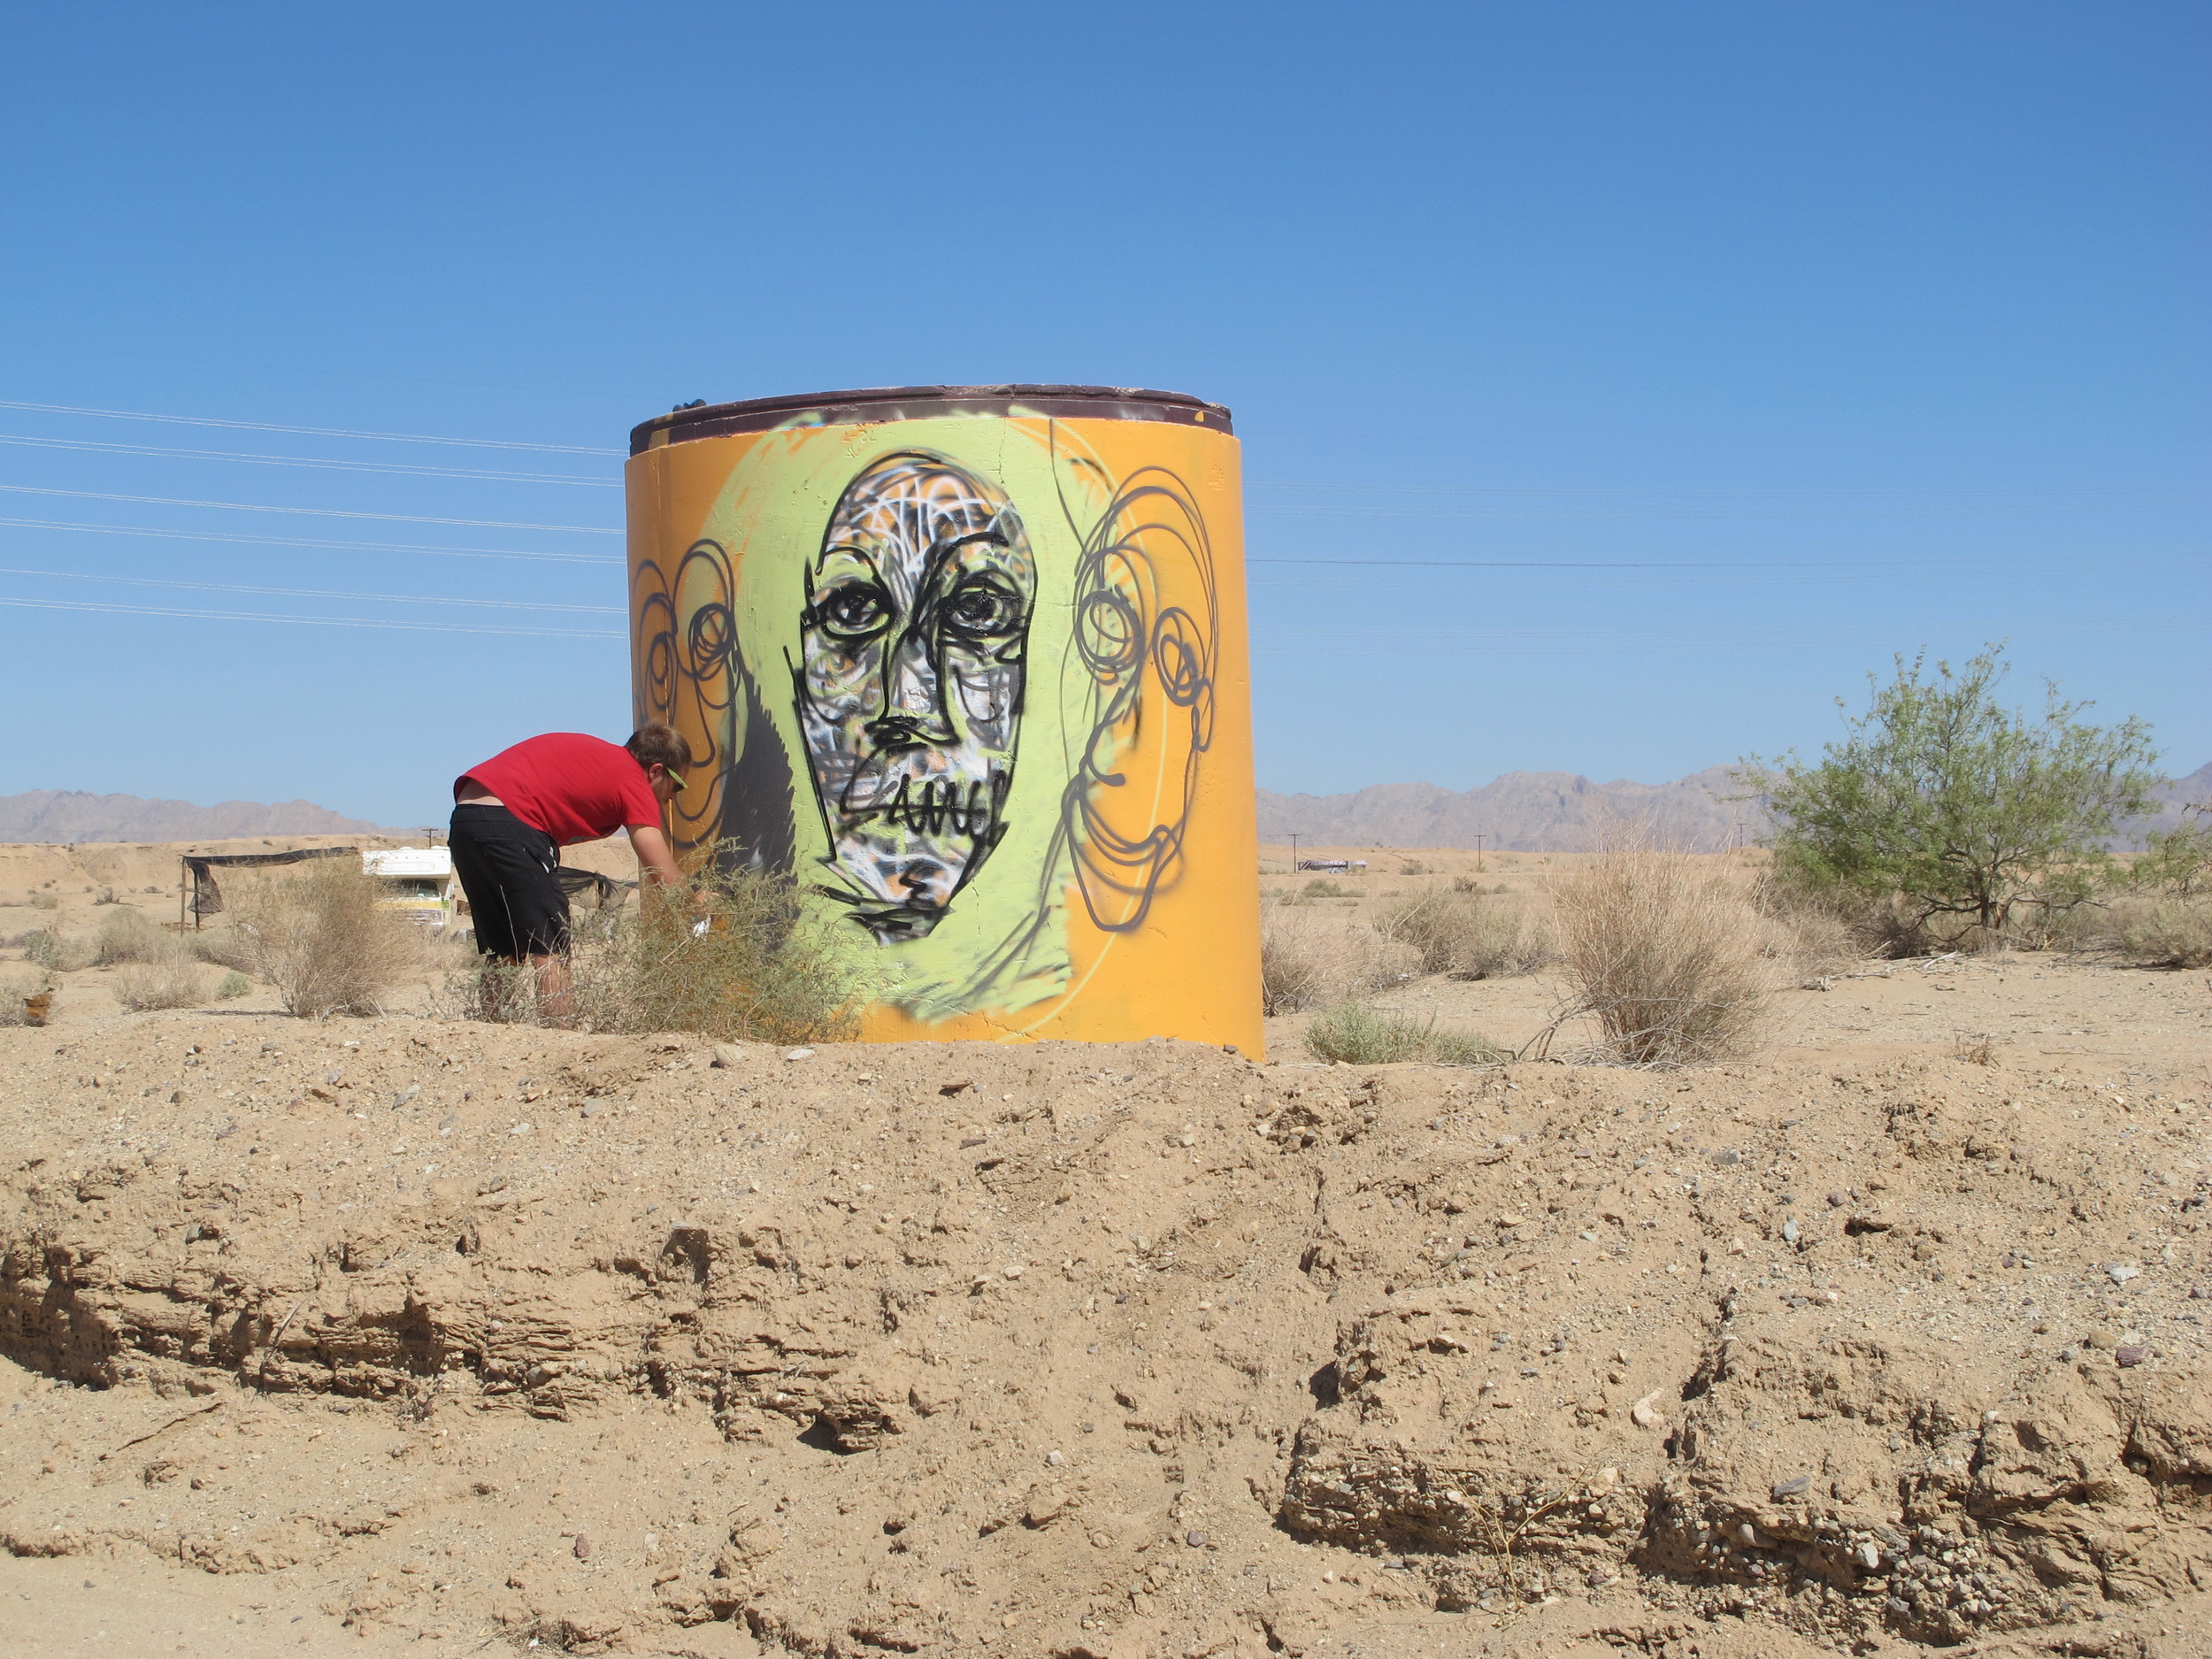 the face in the center is the very first thing i painted at  slab city  and i believe it to be an accurate response or feeling of this unusual place...after painting what i may consider a ghost of slab city i began adding  lighthearted imagery more akin to my painting style